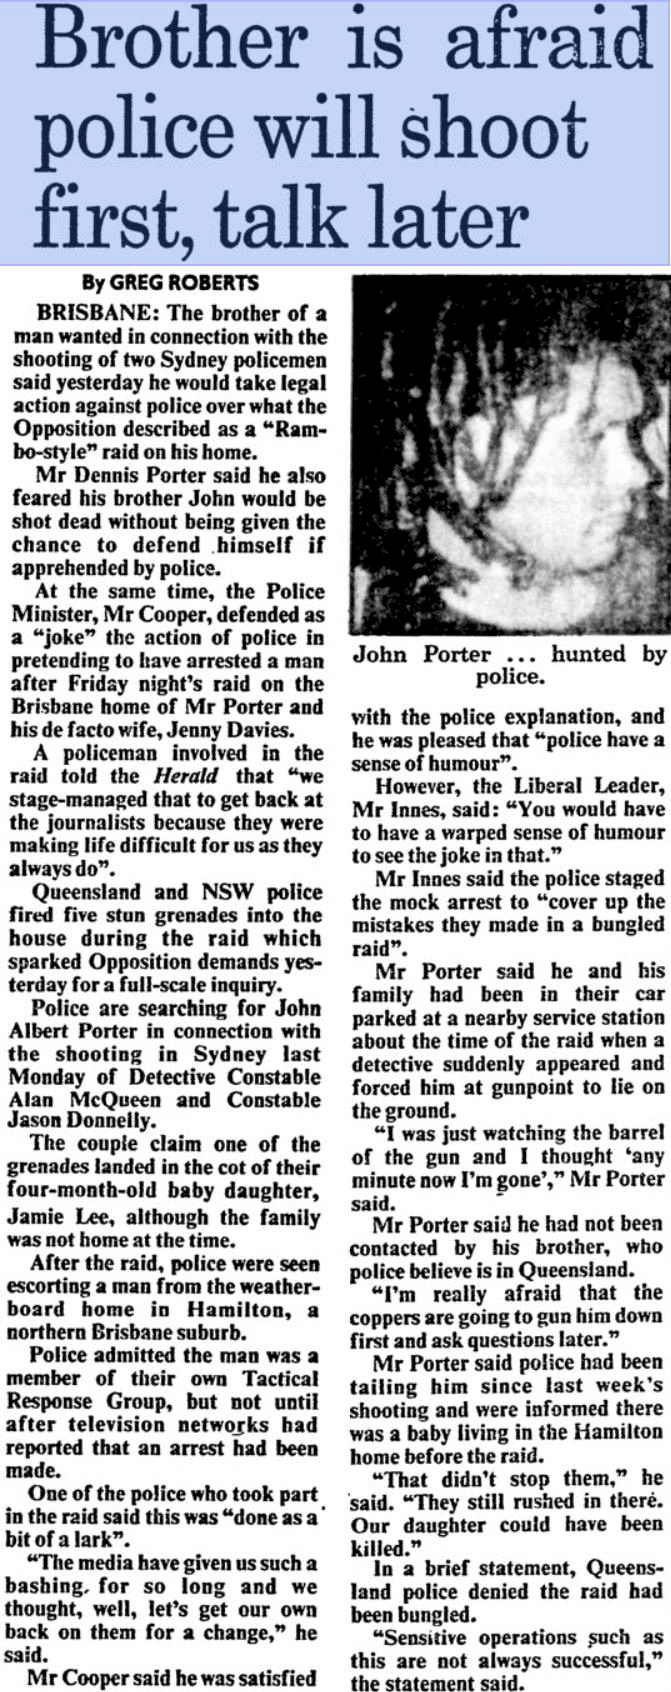 The Sydney Morning Herald 1 May 1989 p6 of 76